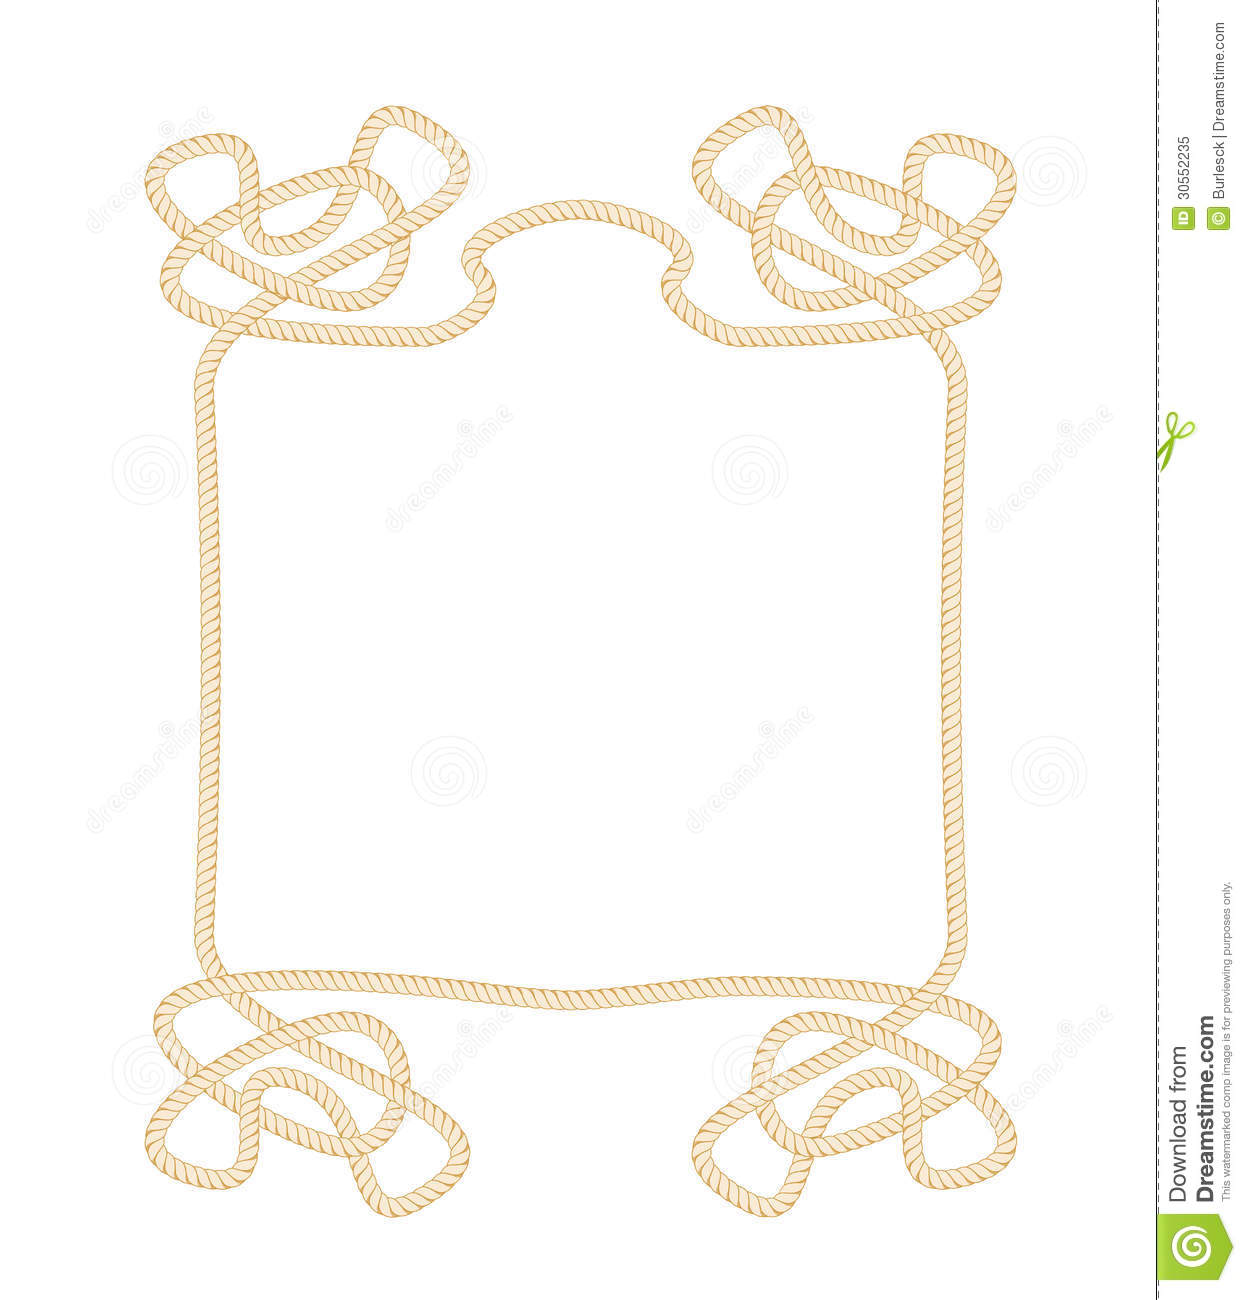 Vector Rope Frame Royalty Free Stock Photo Image 30552235: rope photo frame